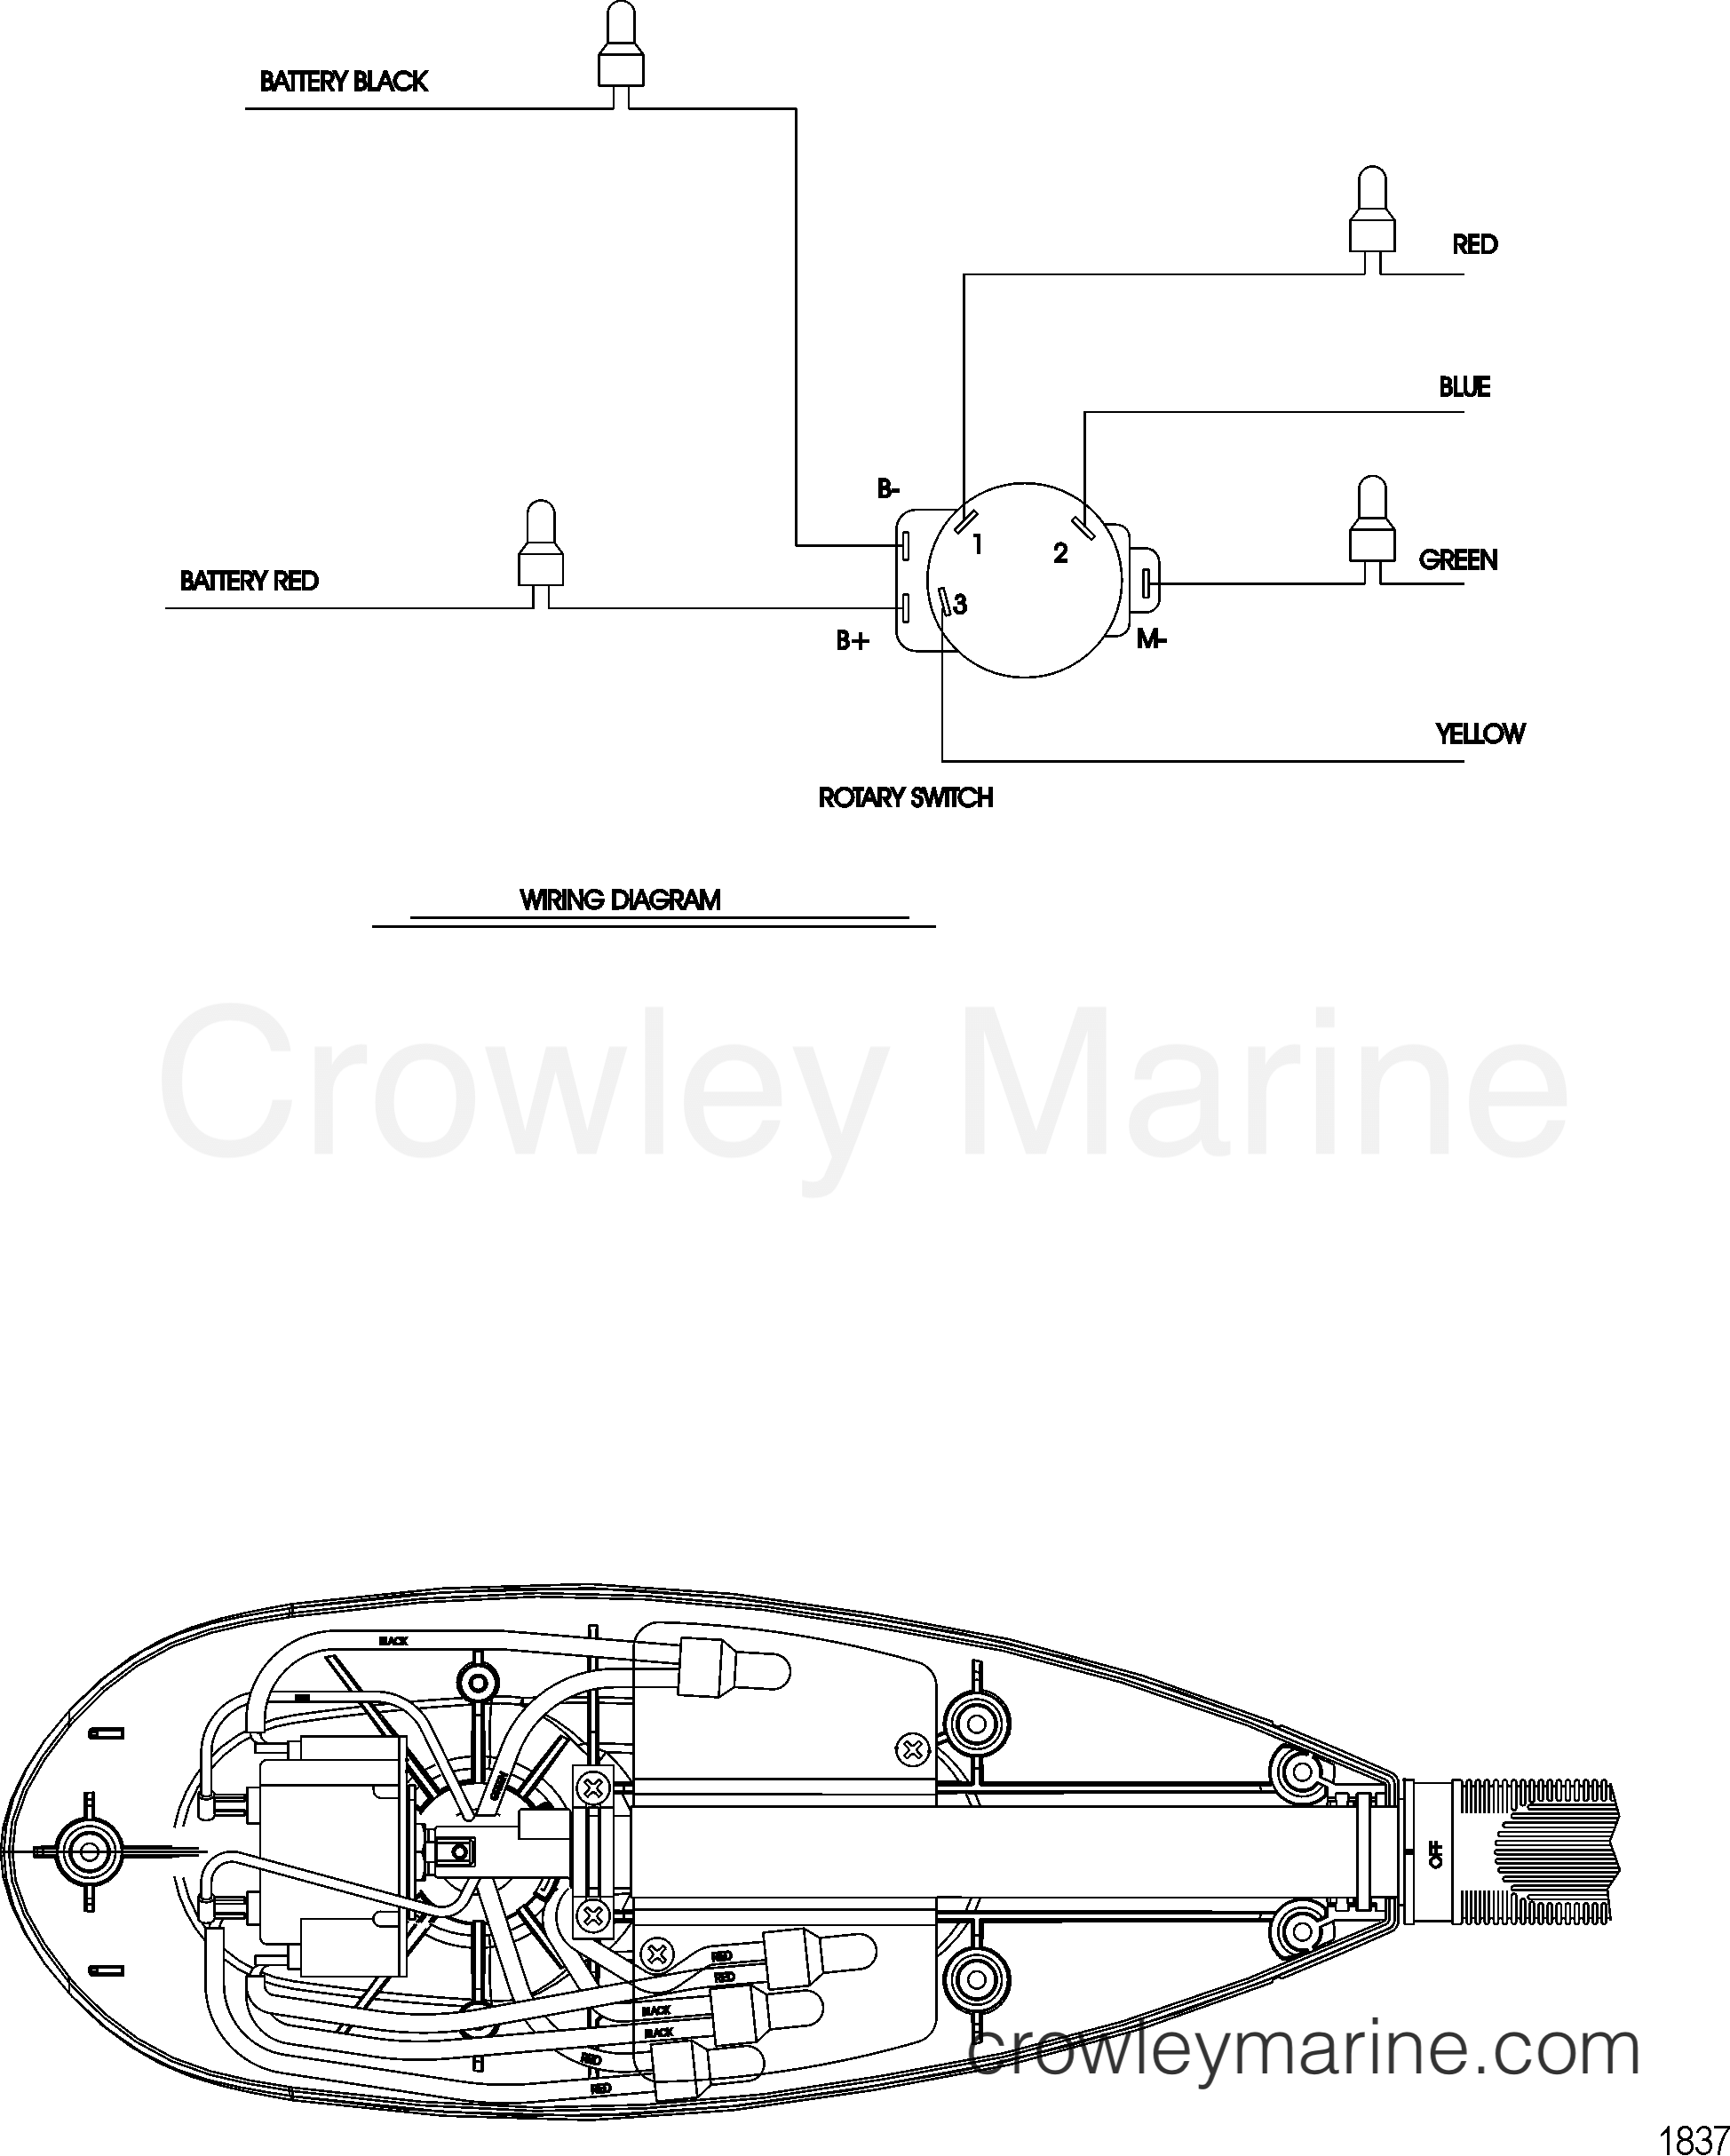 2008 MotorGuide 12V [MOTORGUIDE] - 92131013R WIRE DIAGRAM(MODEL FW71HB) (WITHOUT QUICK CONNECT) section